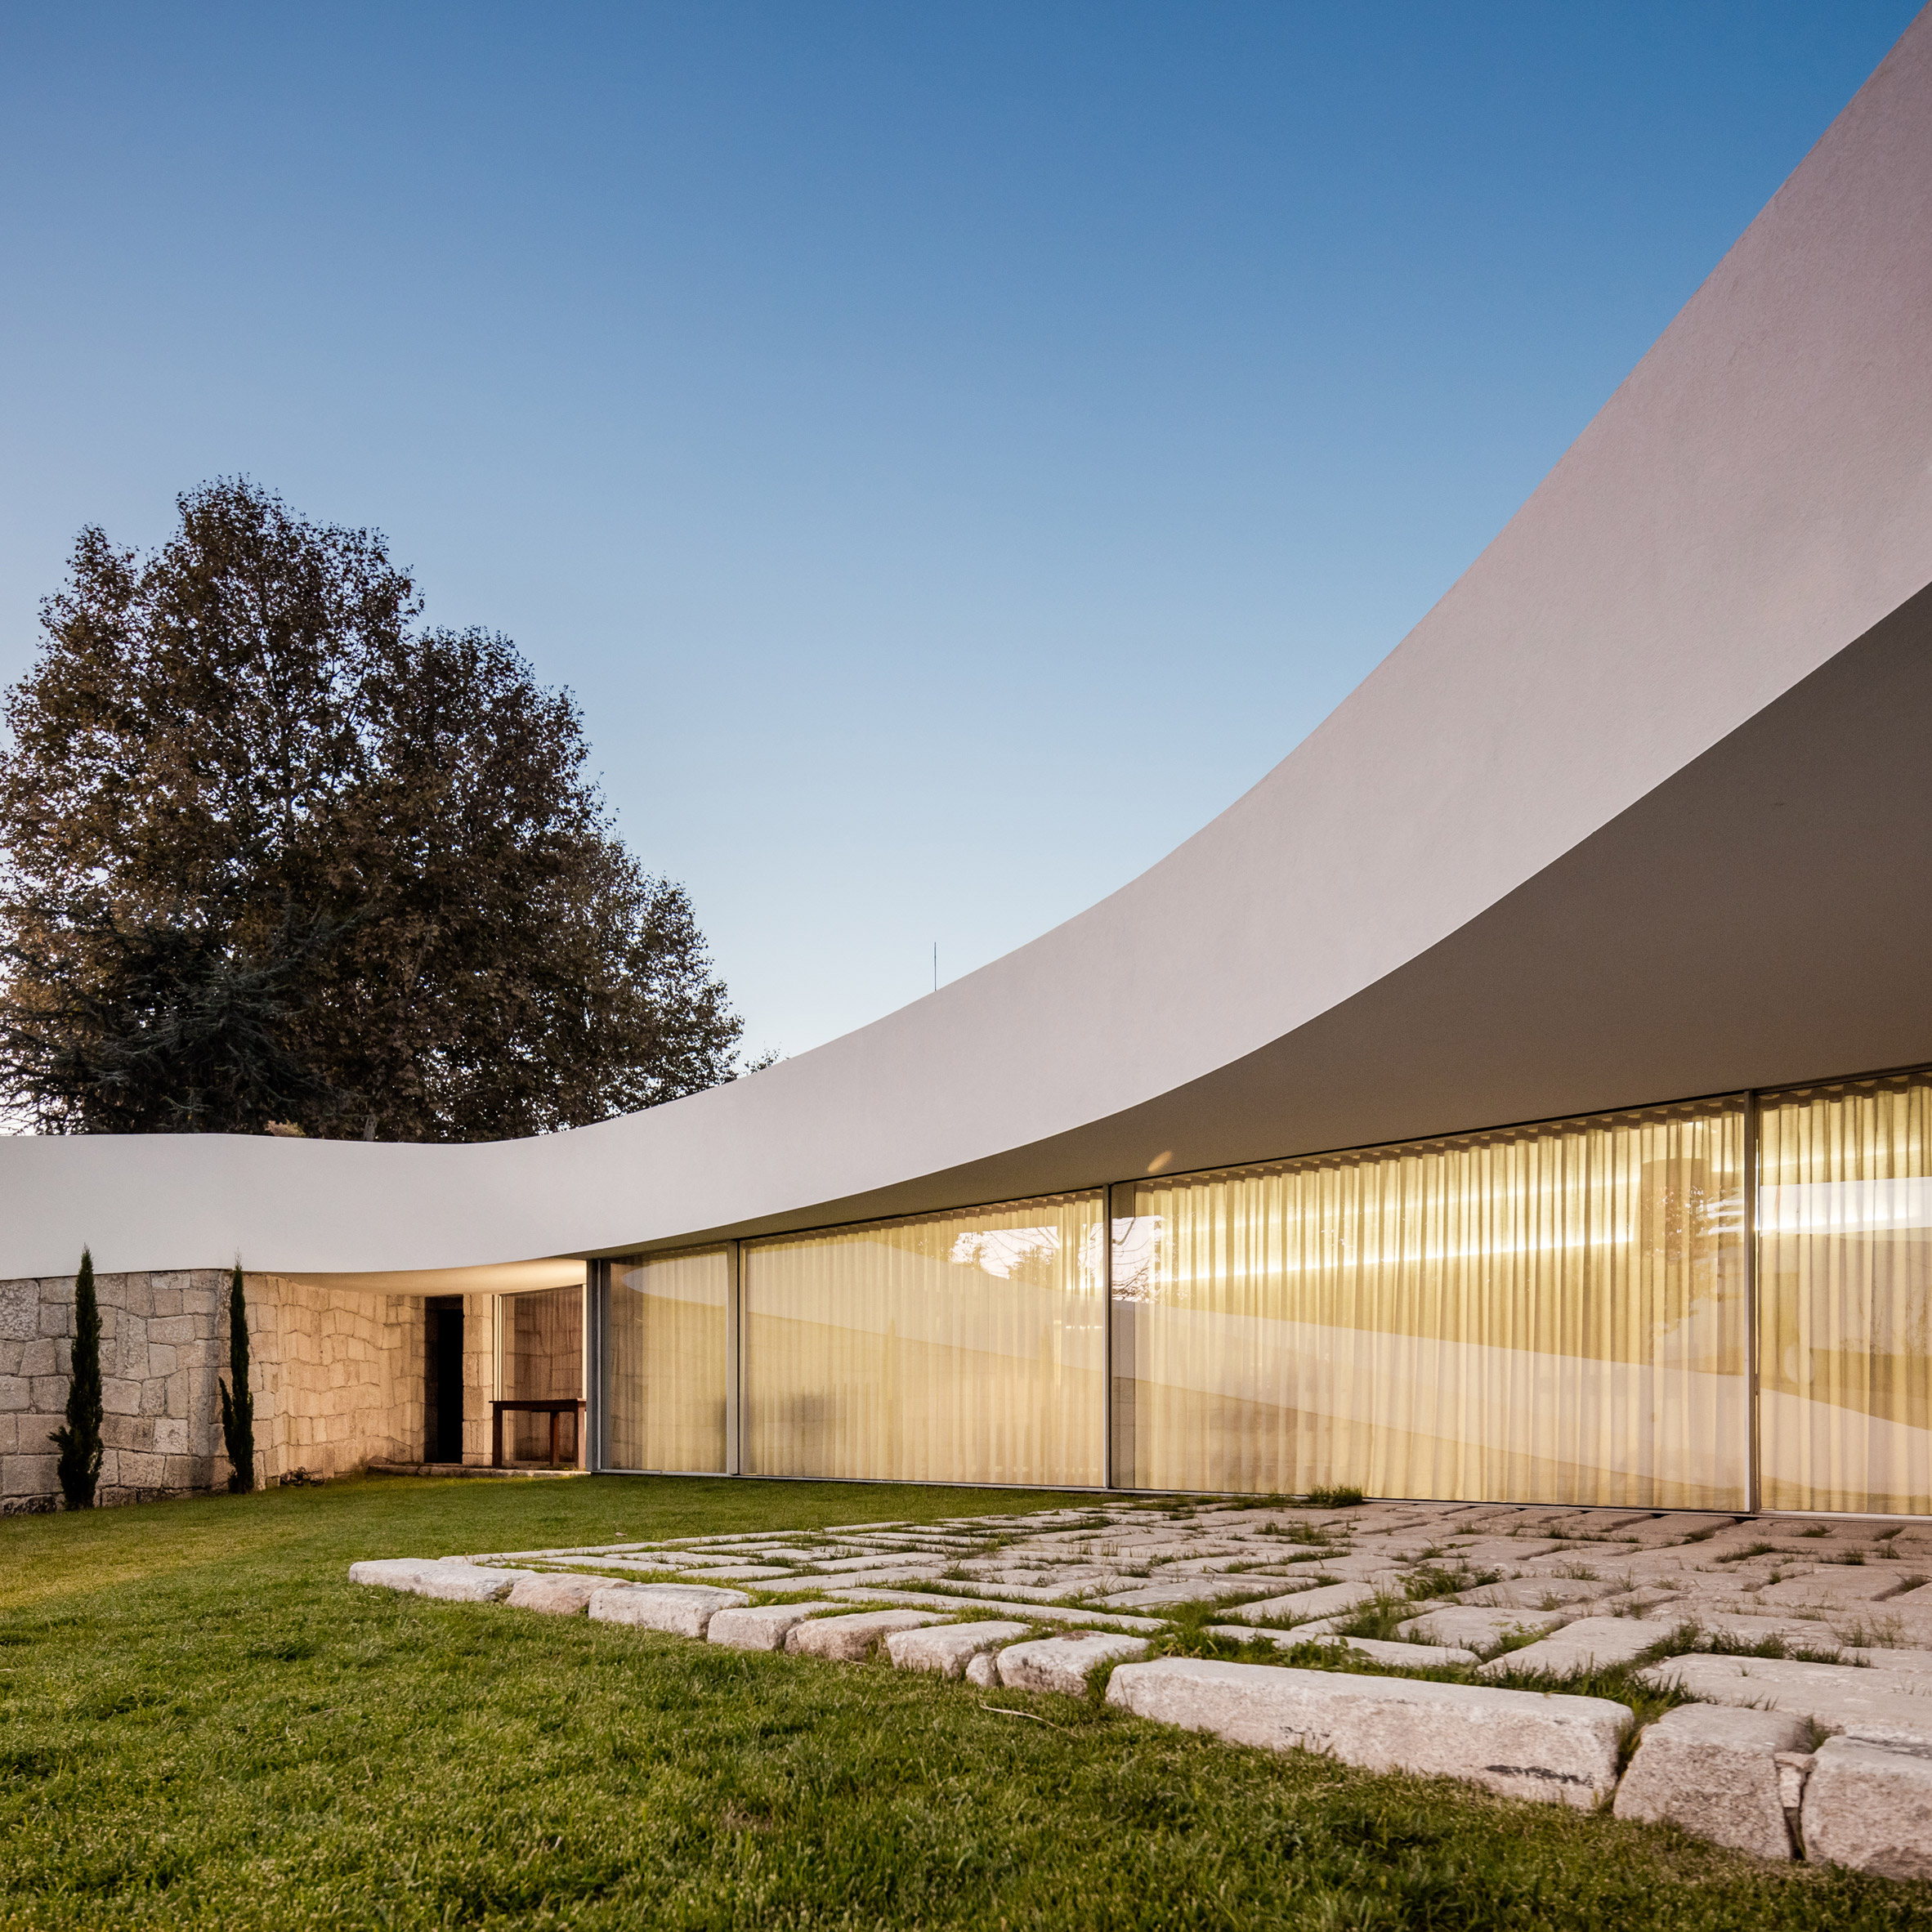 Curving Roof And Stone Walls Create Seclusion For Portuguese House By NOARQ